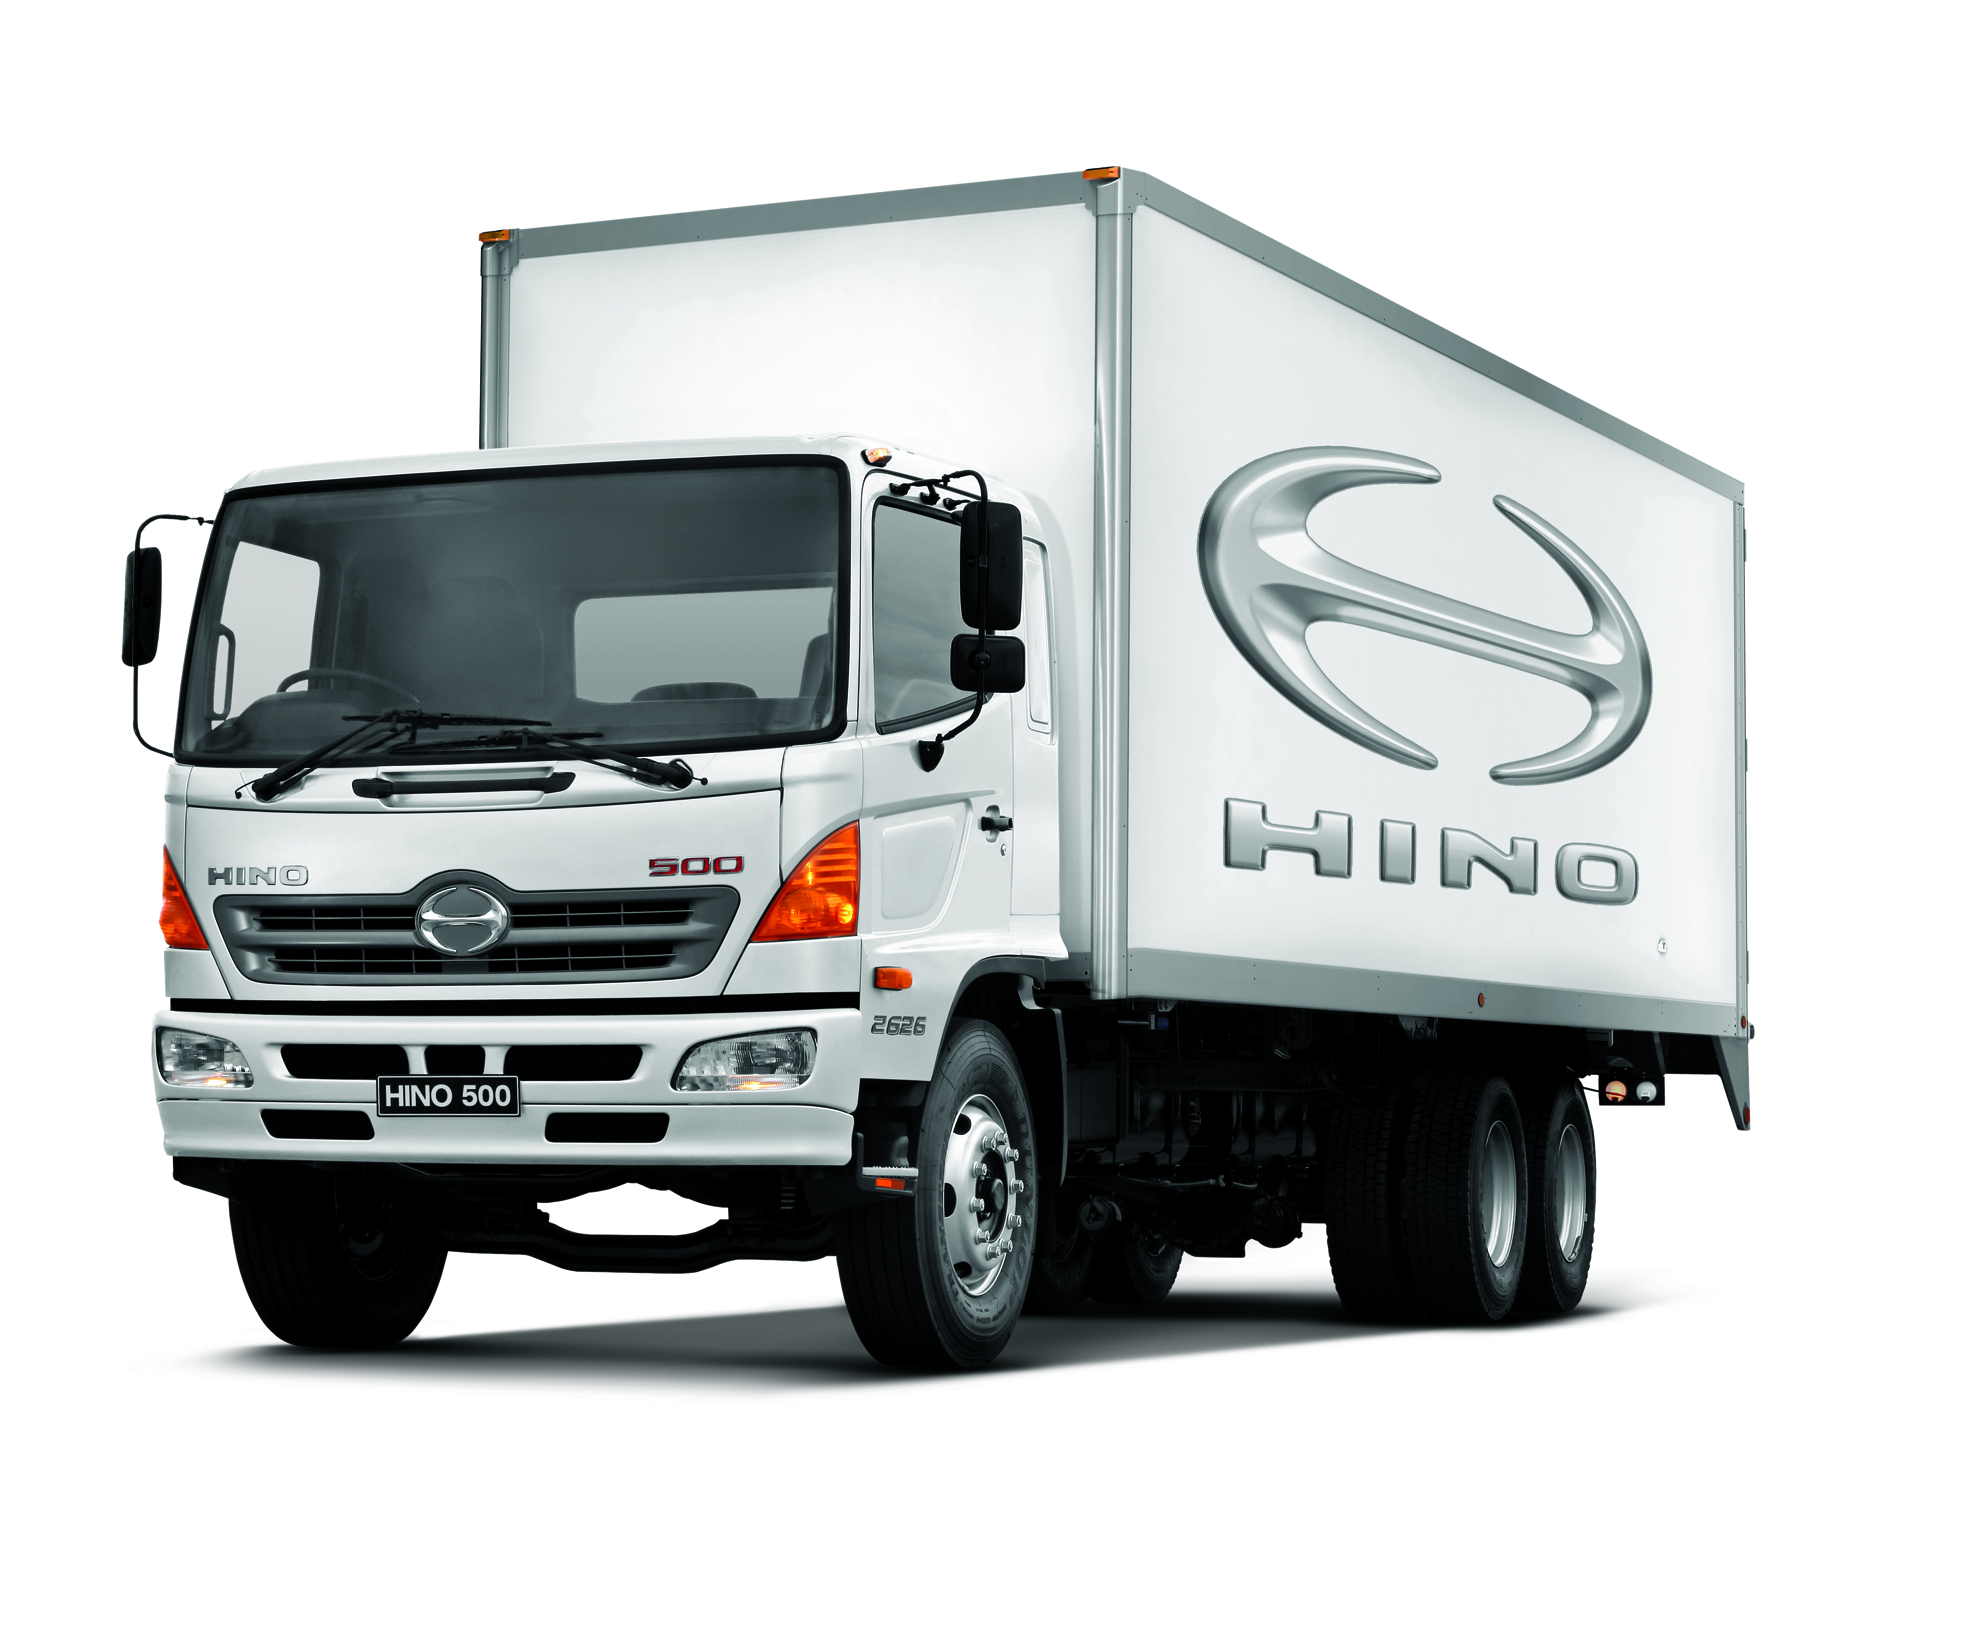 Hino Ranger in addition Hino C 1017 furthermore Showthread in addition Iveco Supports The Legendary Team Abarth Scorpion further Important New Model Added To Hino Truck Range. on hino 500 series